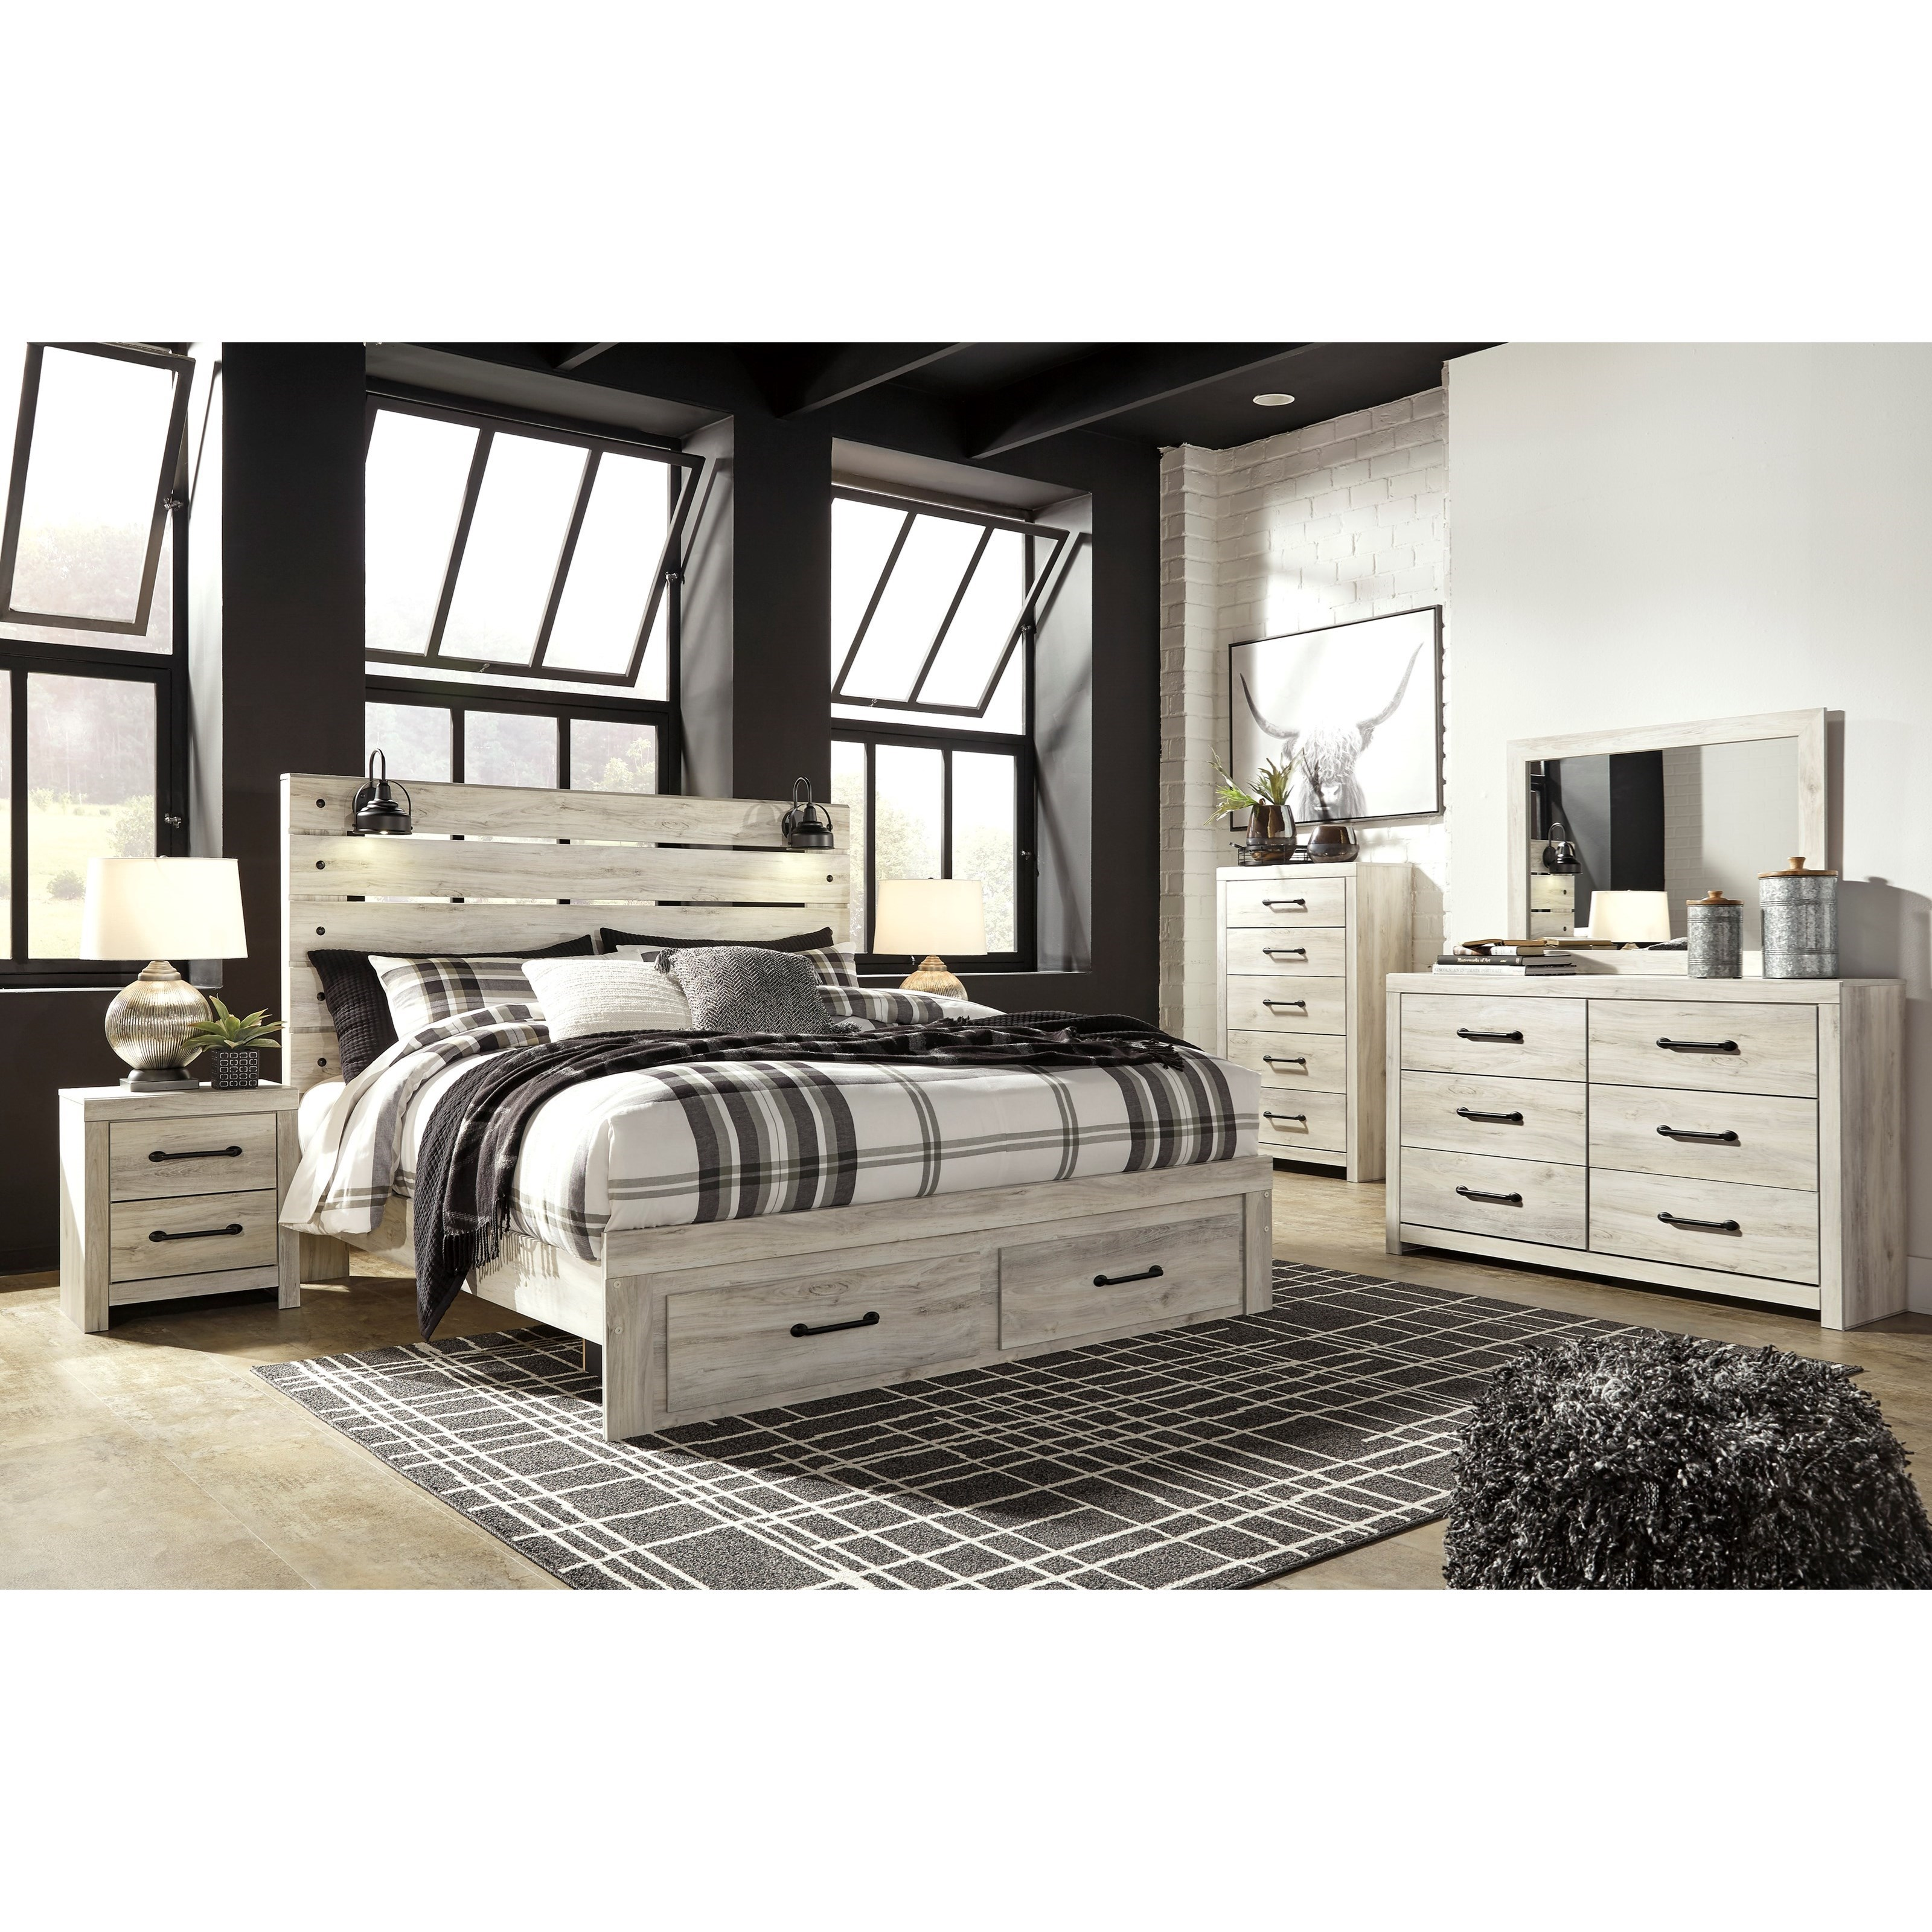 Cambeck King Bedroom Group by Signature Design by Ashley at Northeast Factory Direct